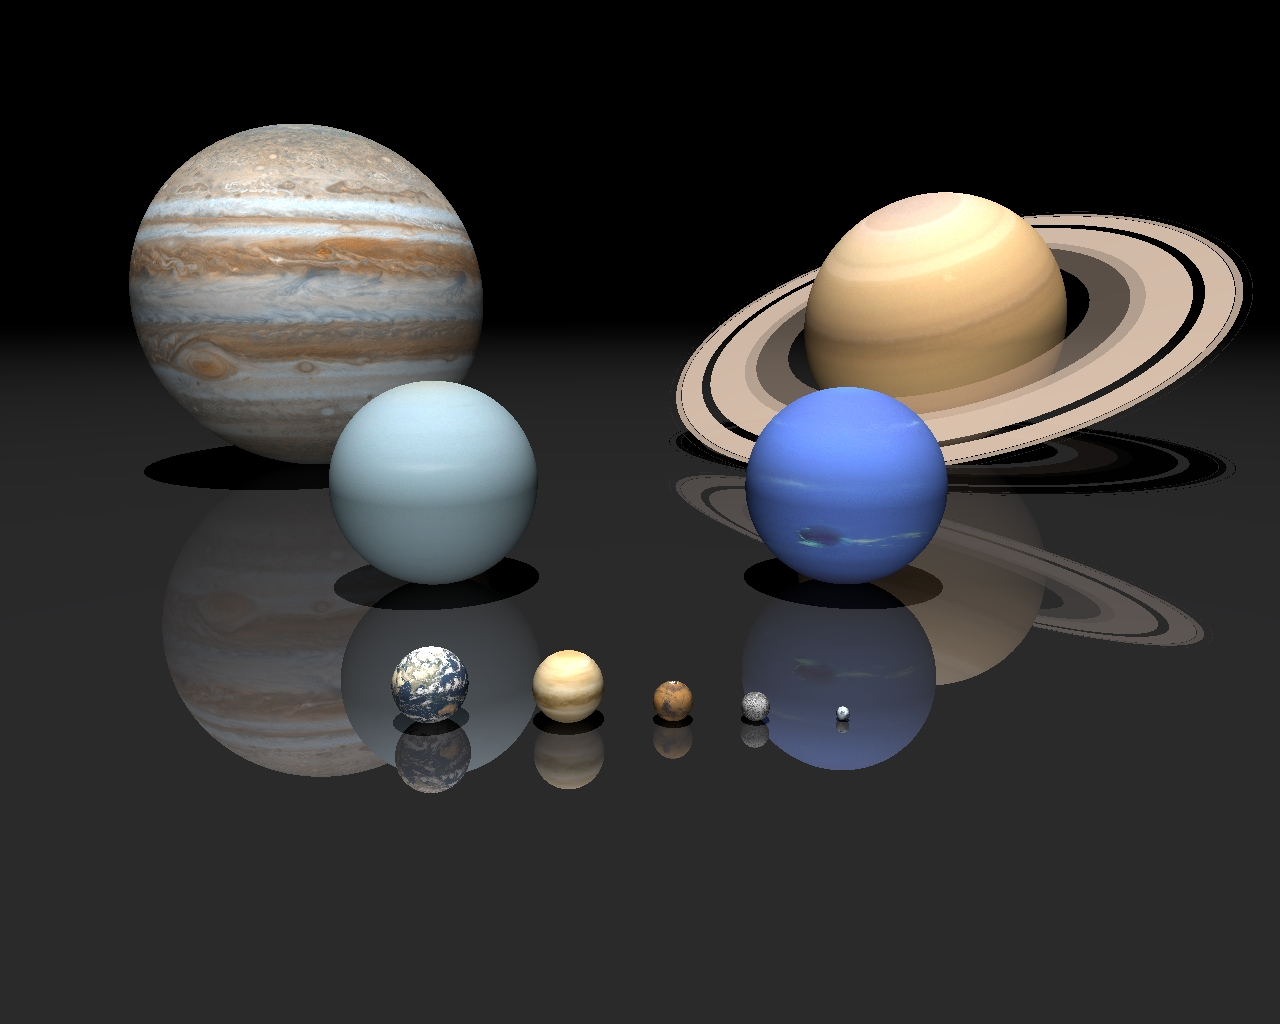 Saturn Compared to Other Planets - Pics about space